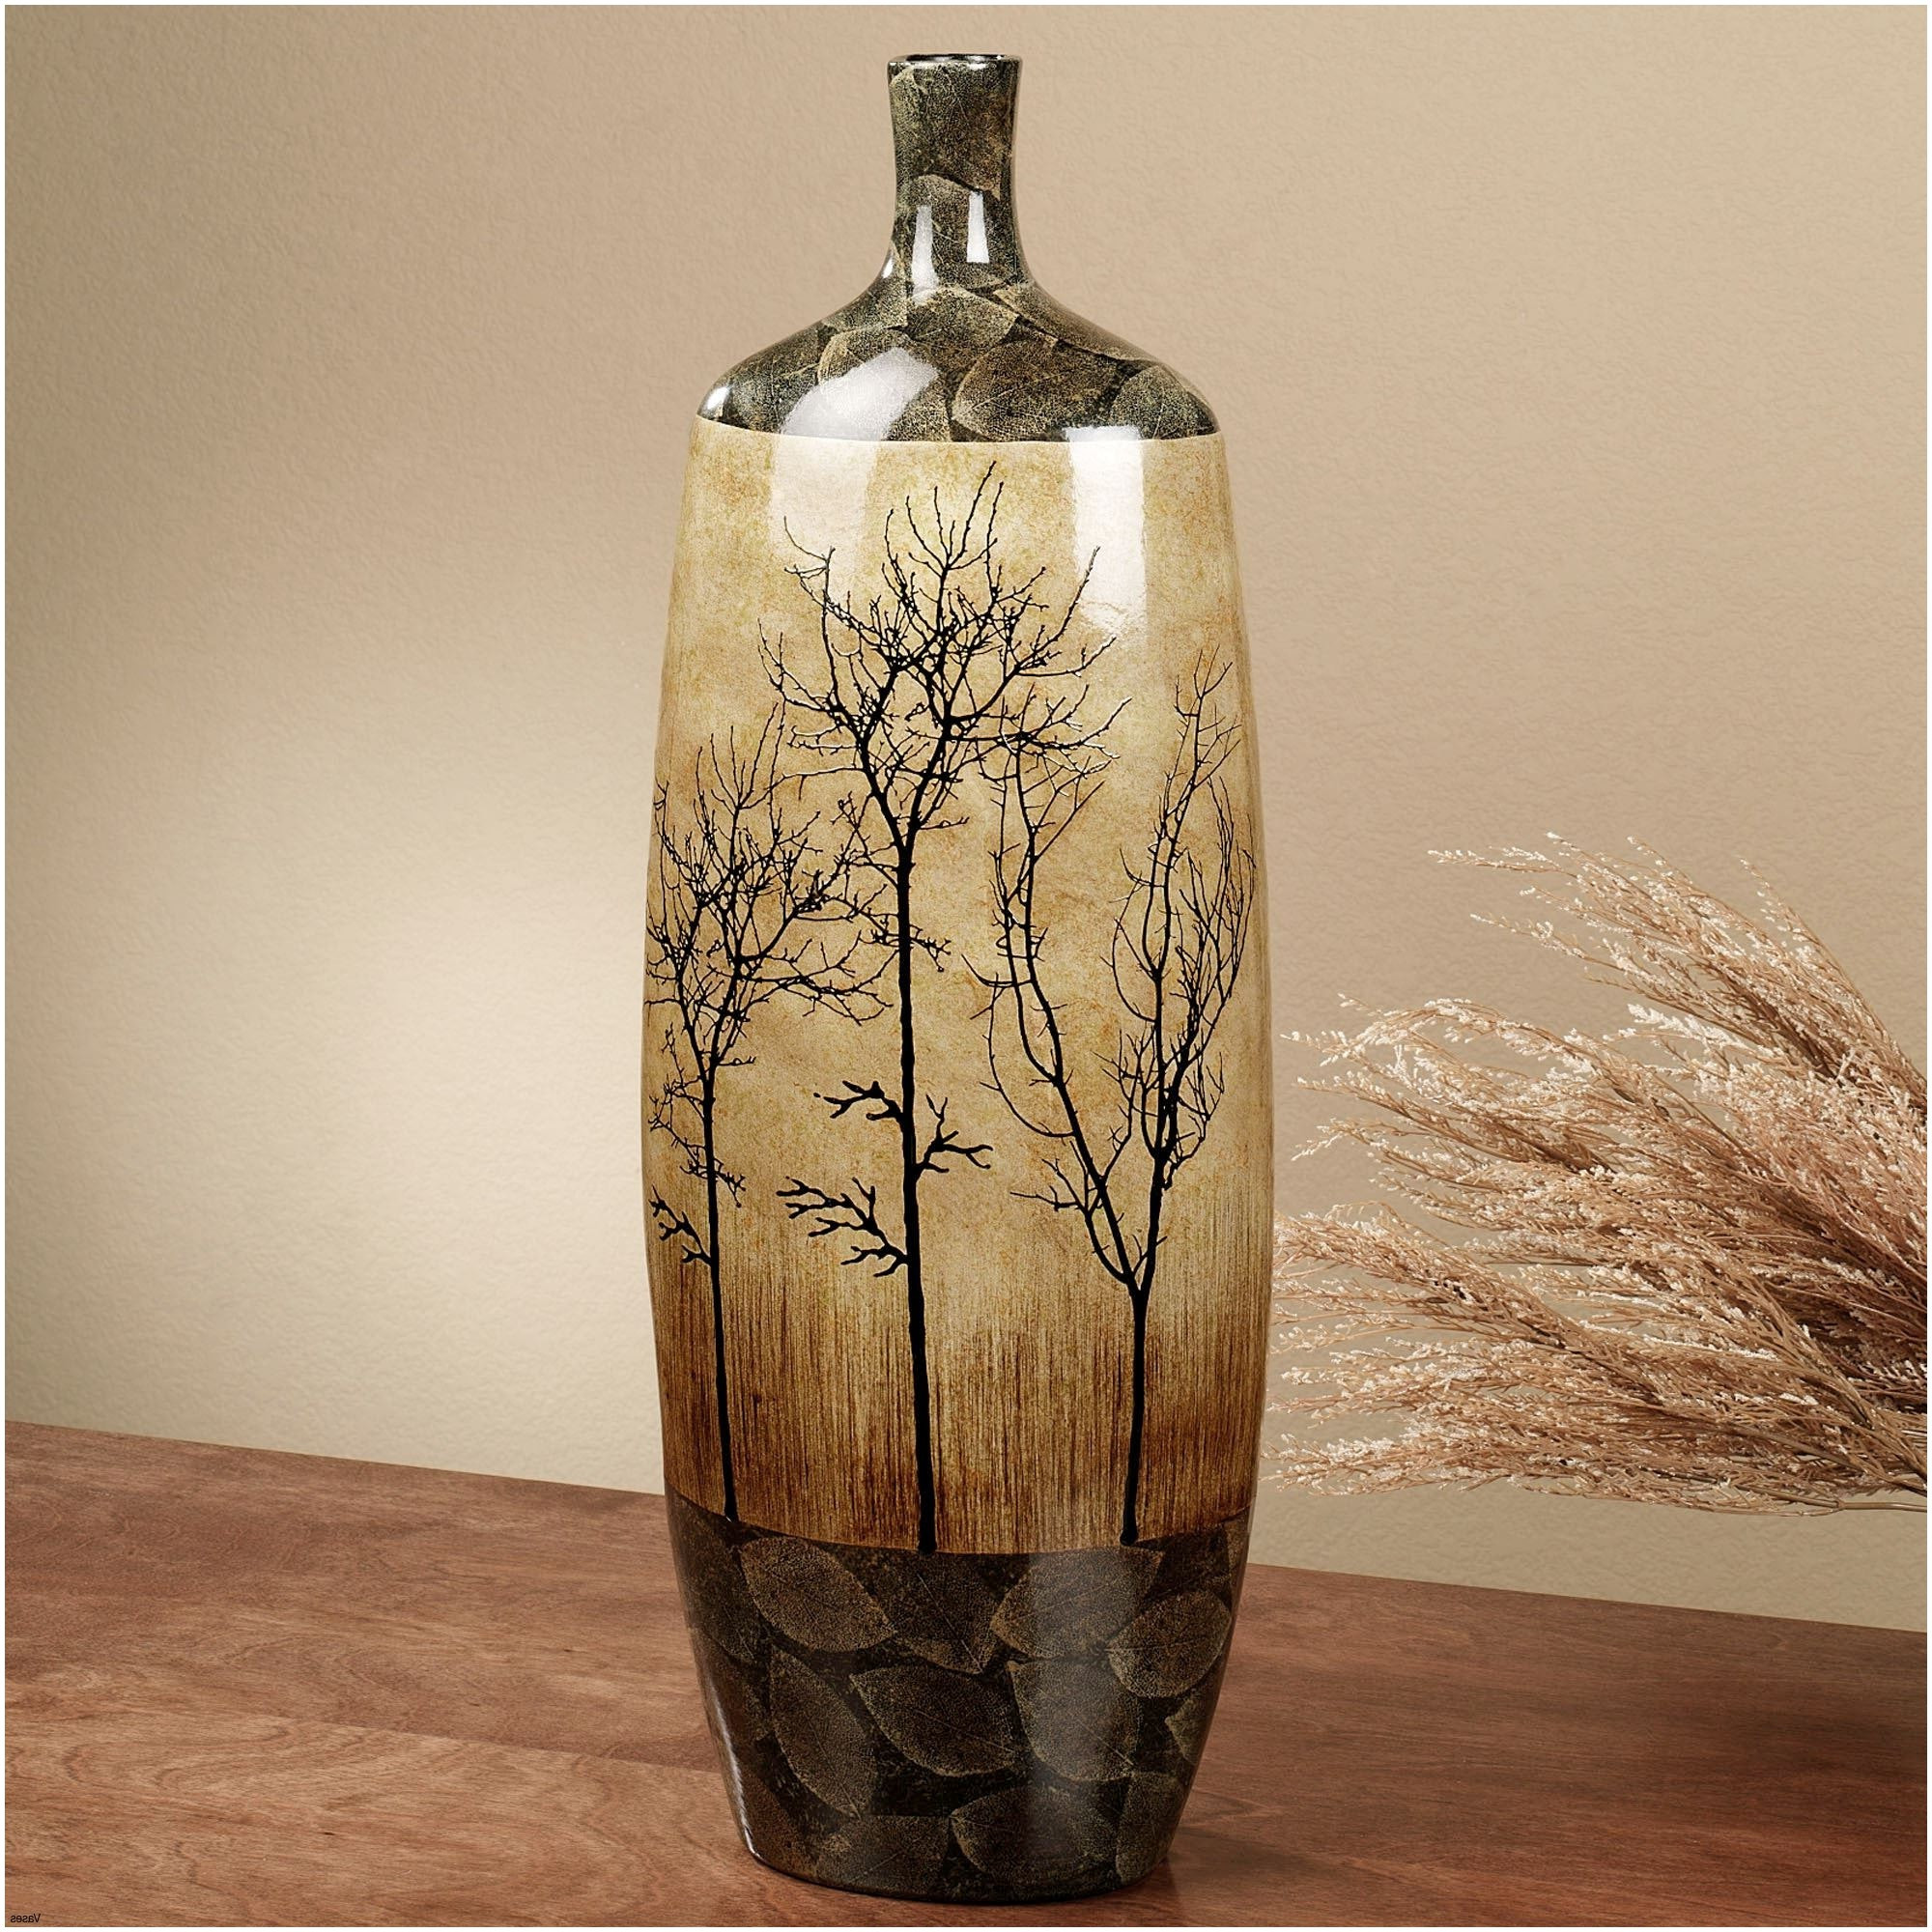 11 Unique Small Decorative Glass Vases